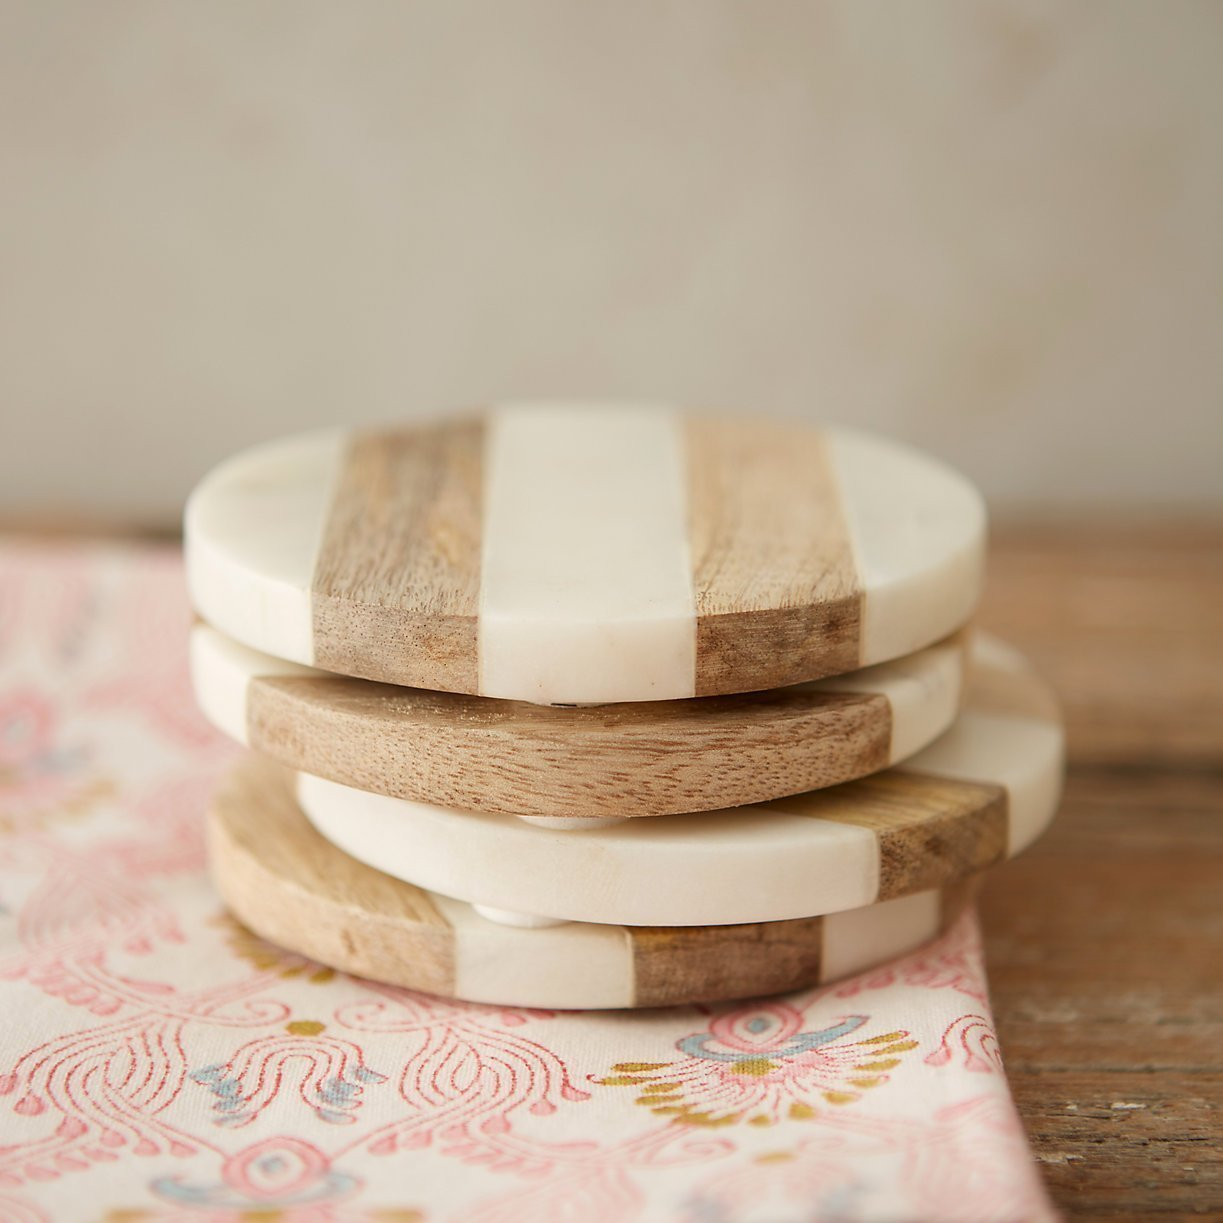 Luxurious Atelier Marble and Wood Set of 4 Coasters, 4 x 4 inches for Drinks, Hot/Cold,Coffee Mugs, Beer Cans,Bar Glasses. Tea Table/Bar coasters